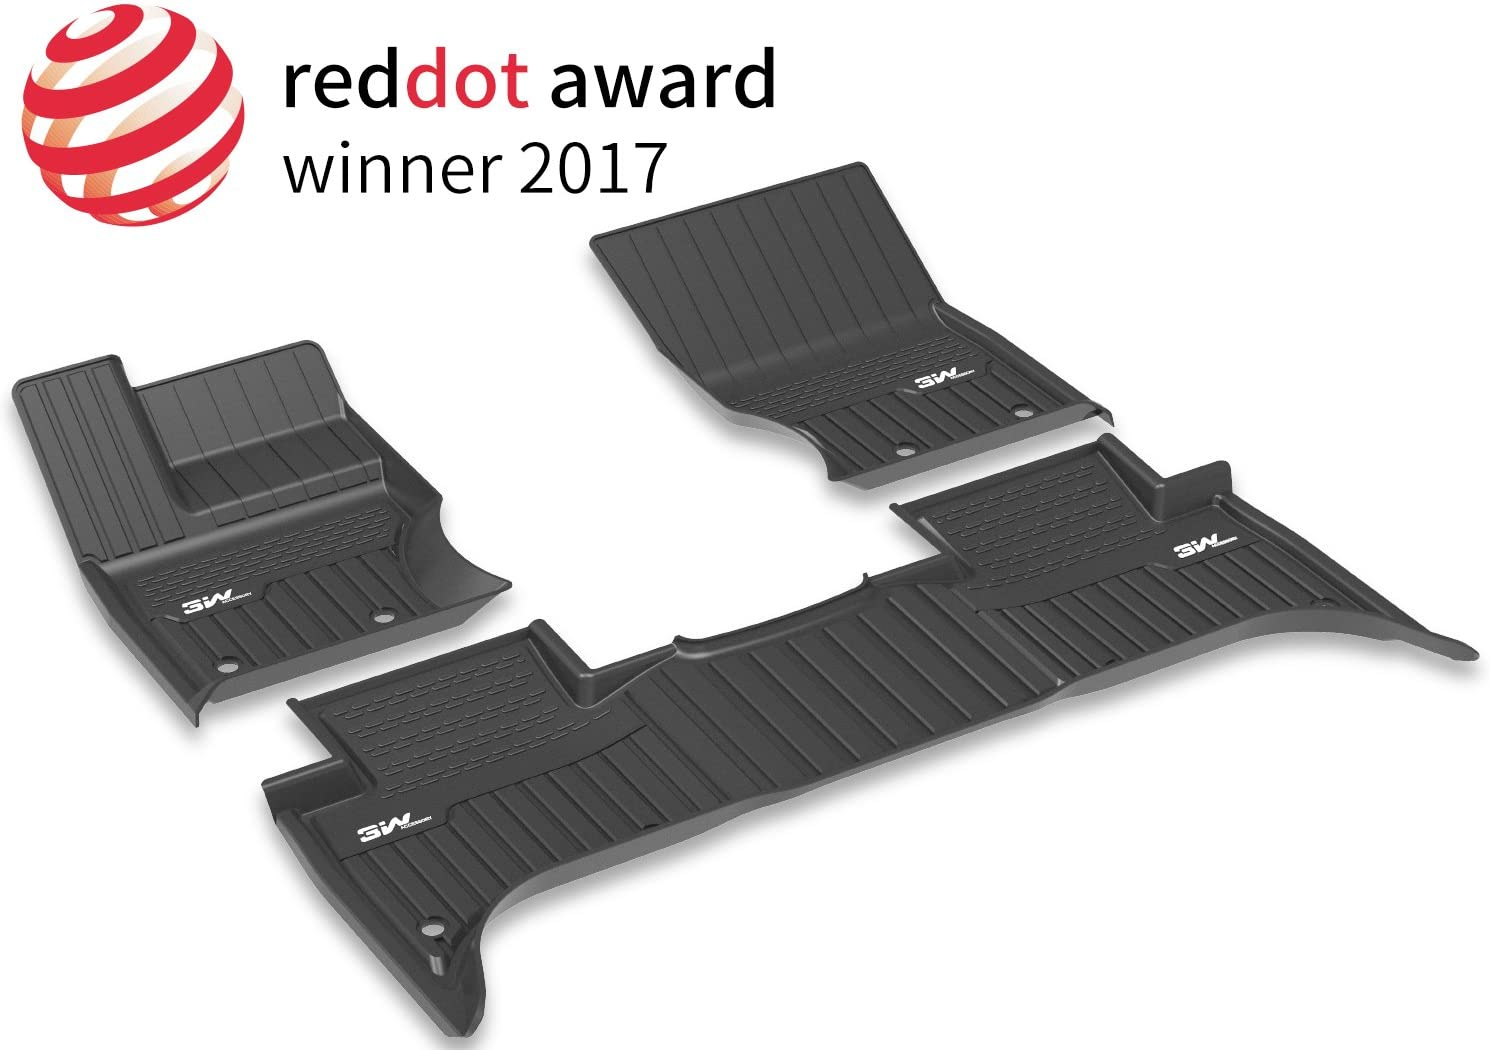 3W Floor Mats for Range Rover Sport (2014-2019) - Car Mats with Non-Toxic Odorless TPE All Weather Heavy Duty Custom Fit Floor Mats Liner (not for Range/Land Rover Discovery Sport), Black